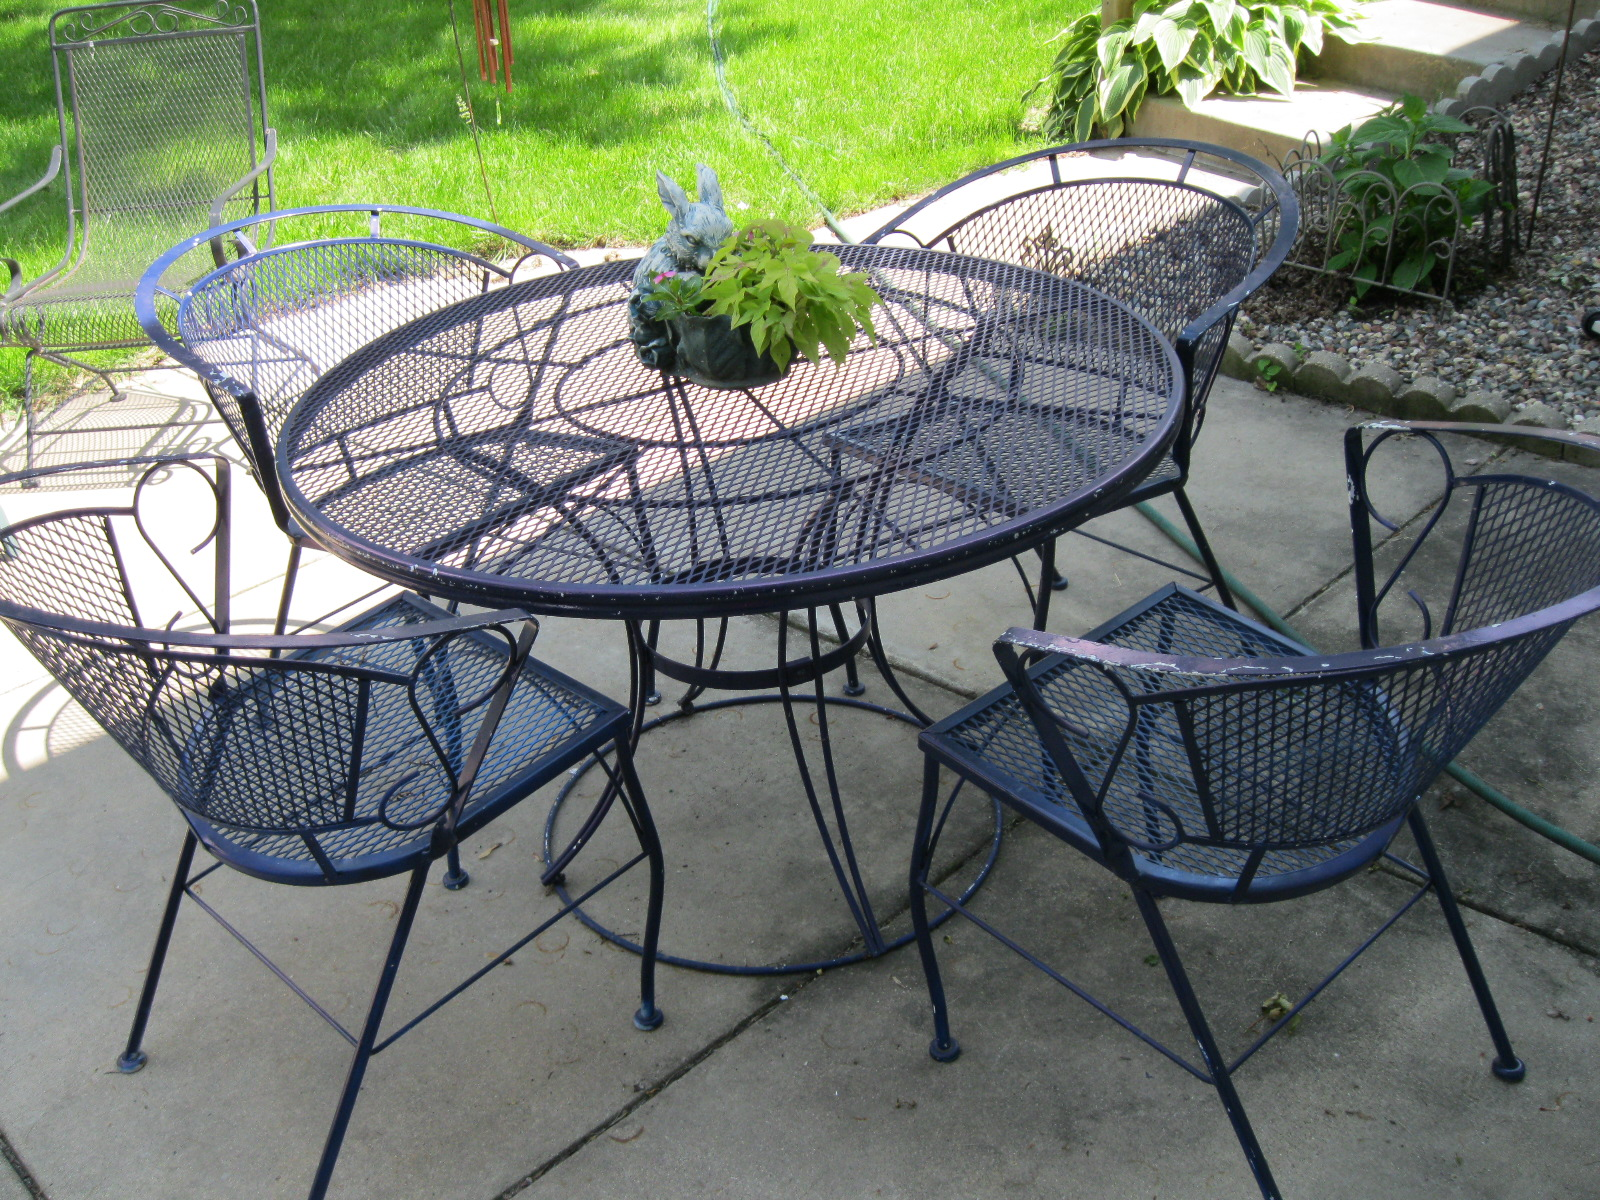 Garage sale gal patio set pretty toes and books for Best wrought iron patio furniture